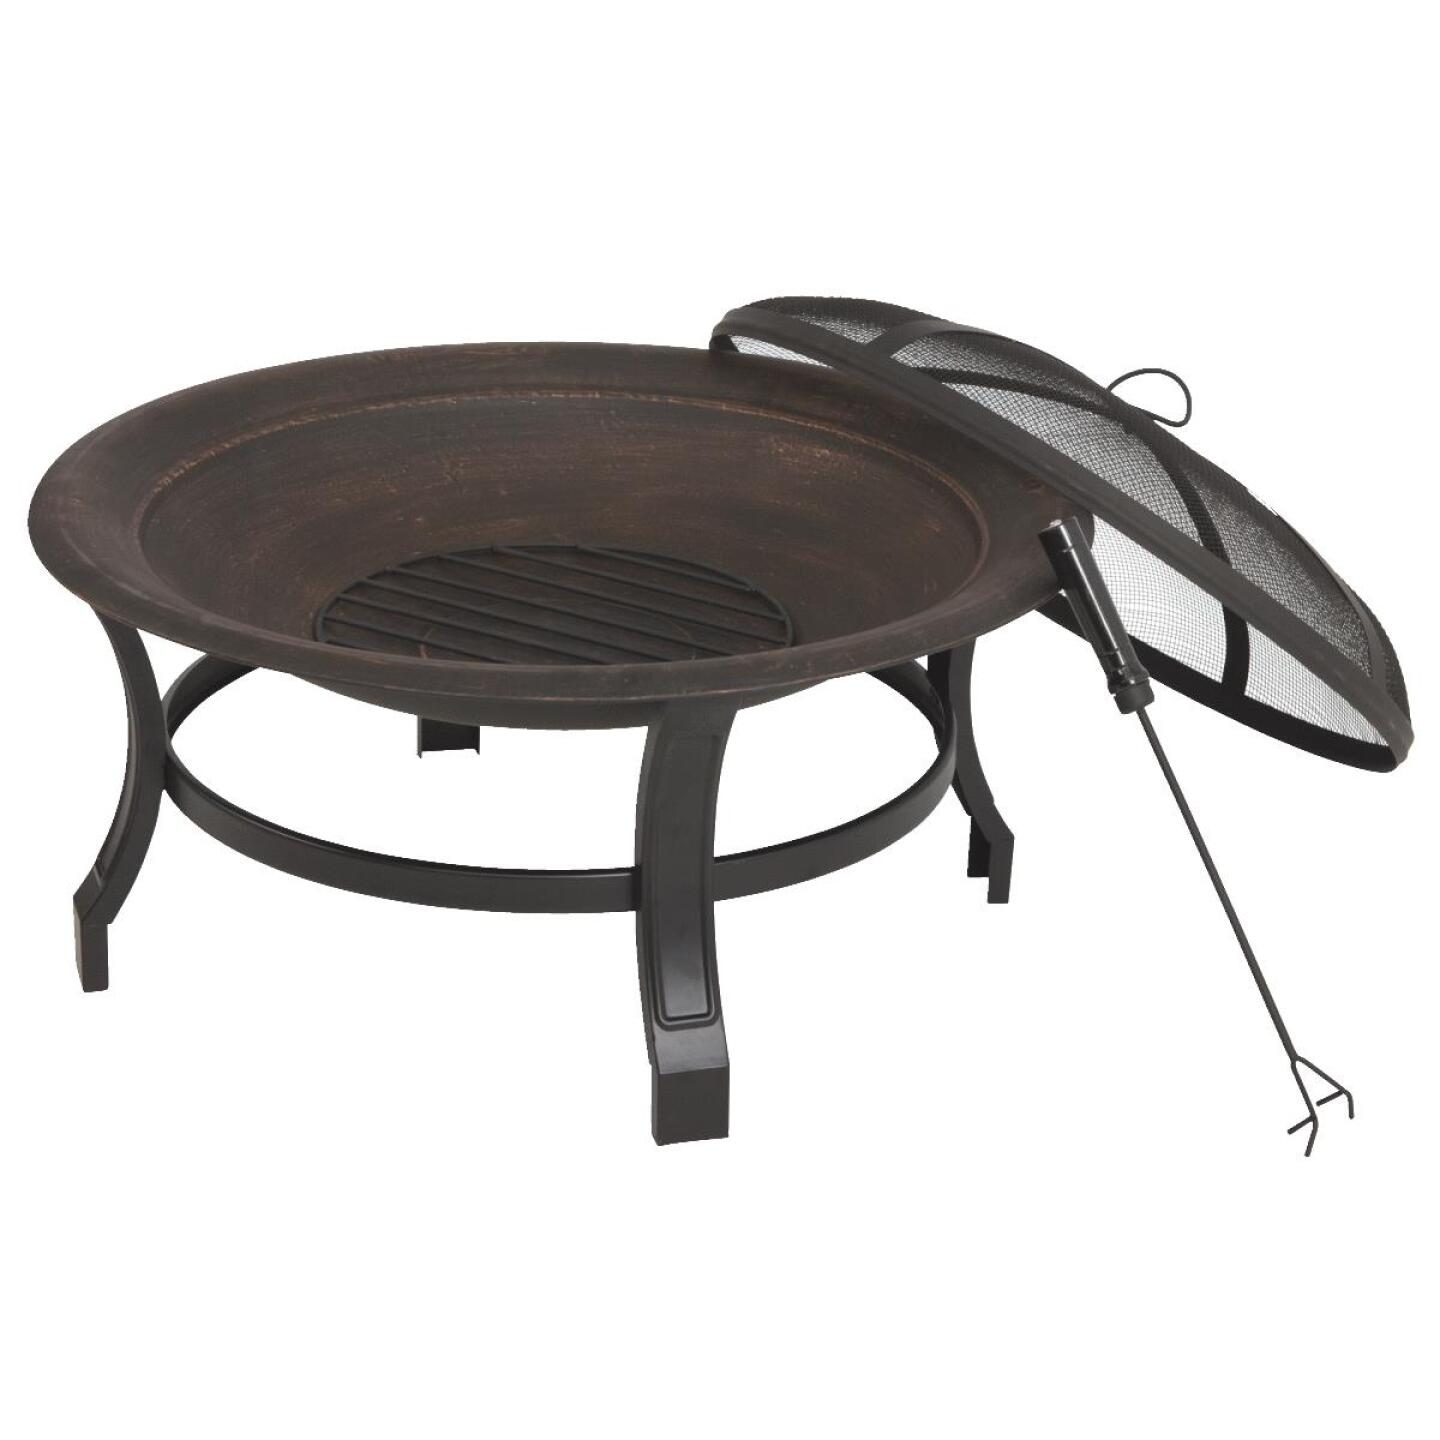 Outdoor Expressions 30 In. Antique Bronze Round Steel Fire Pit Image 2